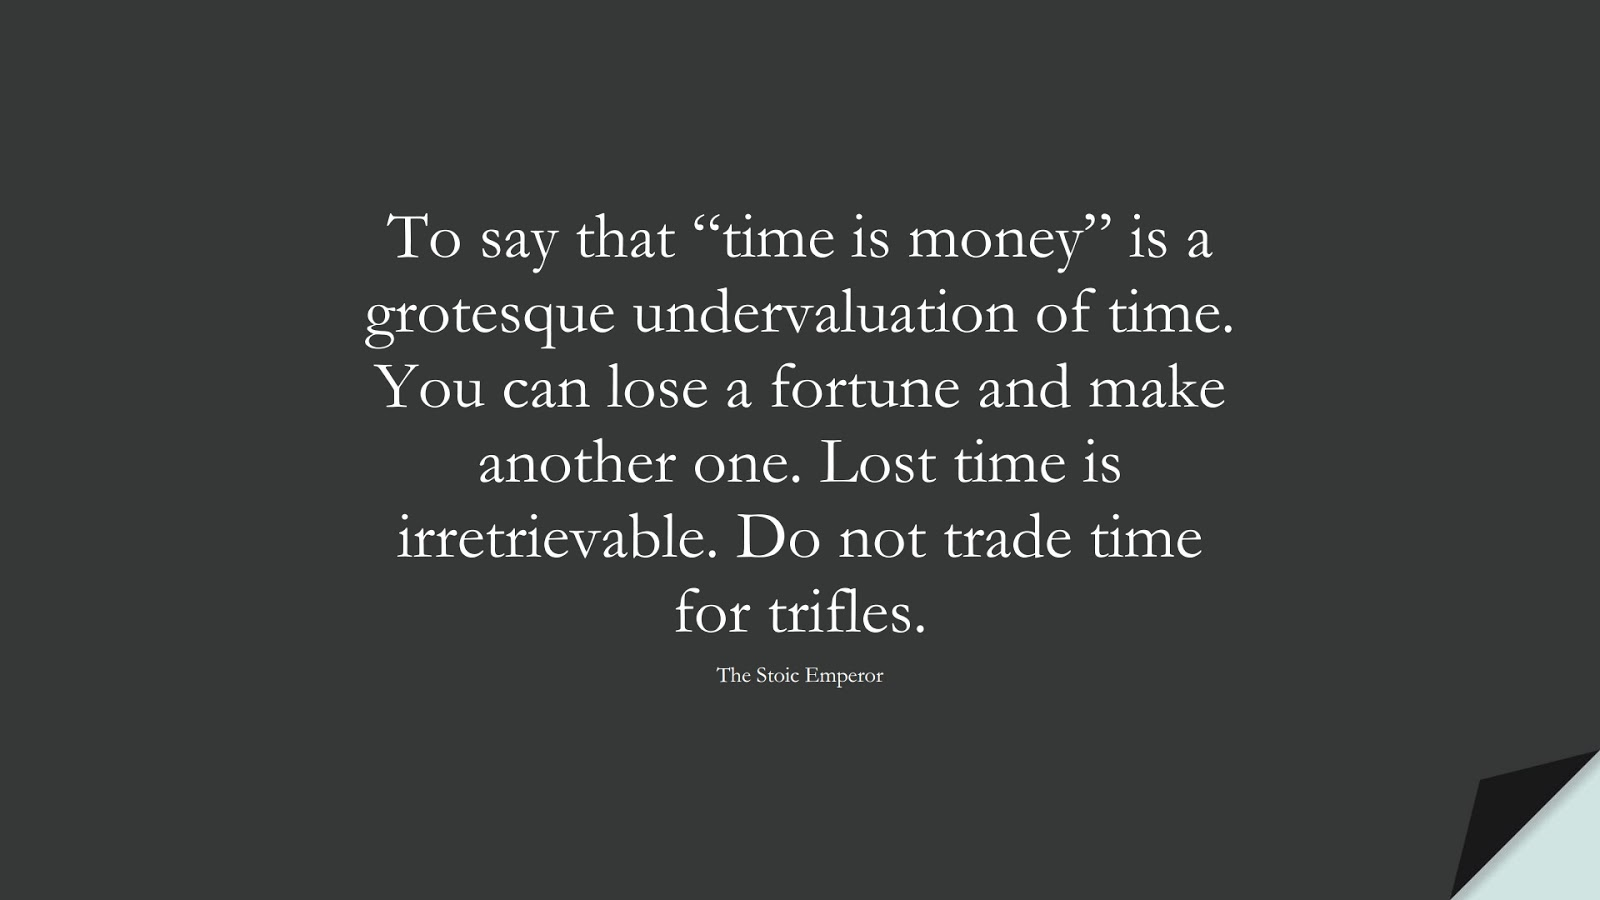 """To say that """"time is money"""" is a grotesque undervaluation of time. You can lose a fortune and make another one. Lost time is irretrievable. Do not trade time for trifles. (The Stoic Emperor);  #MoneyQuotes"""